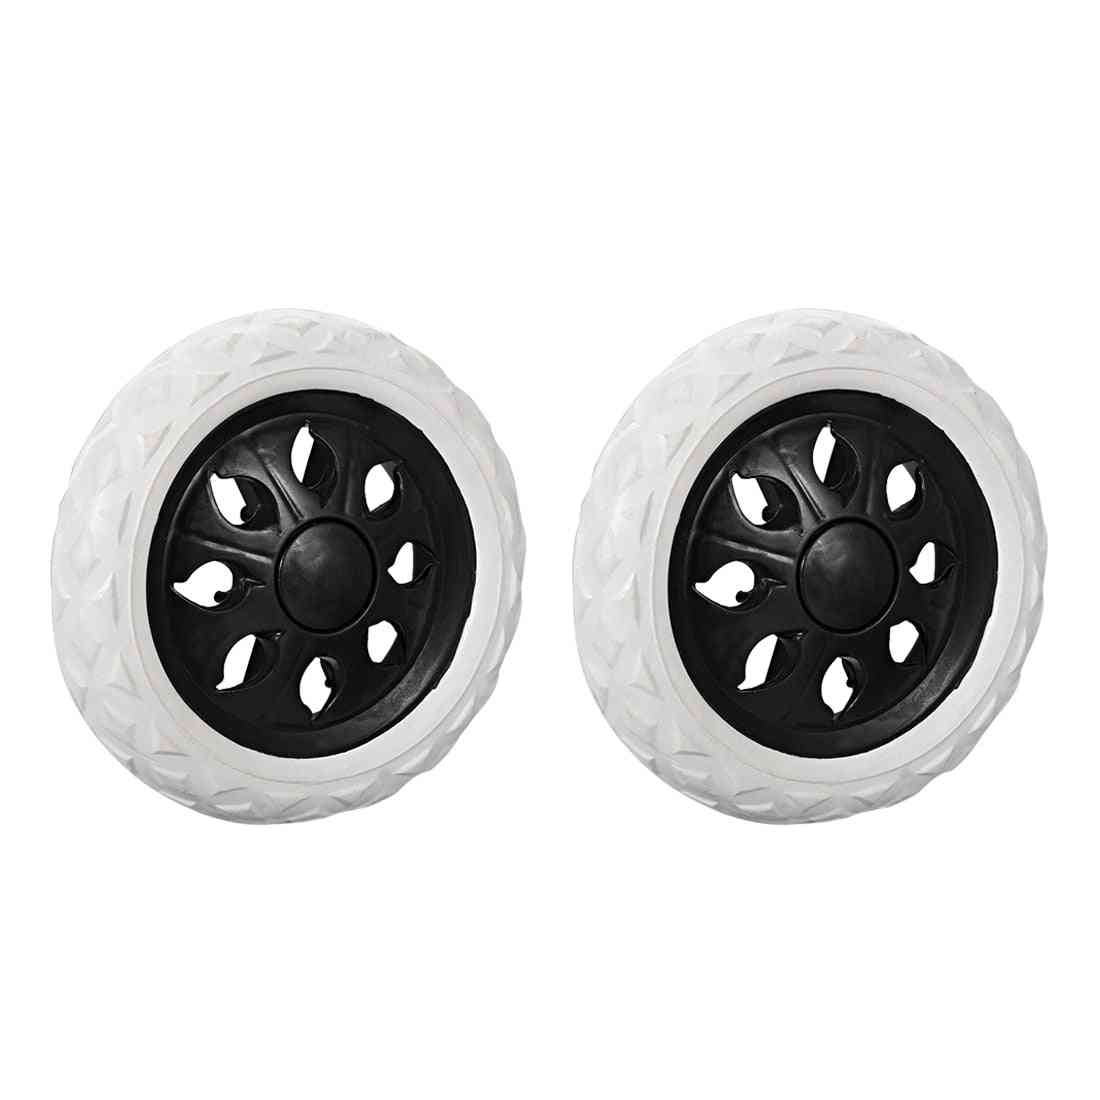 2pcs Shopping Trolley Caster Replacement Wheels